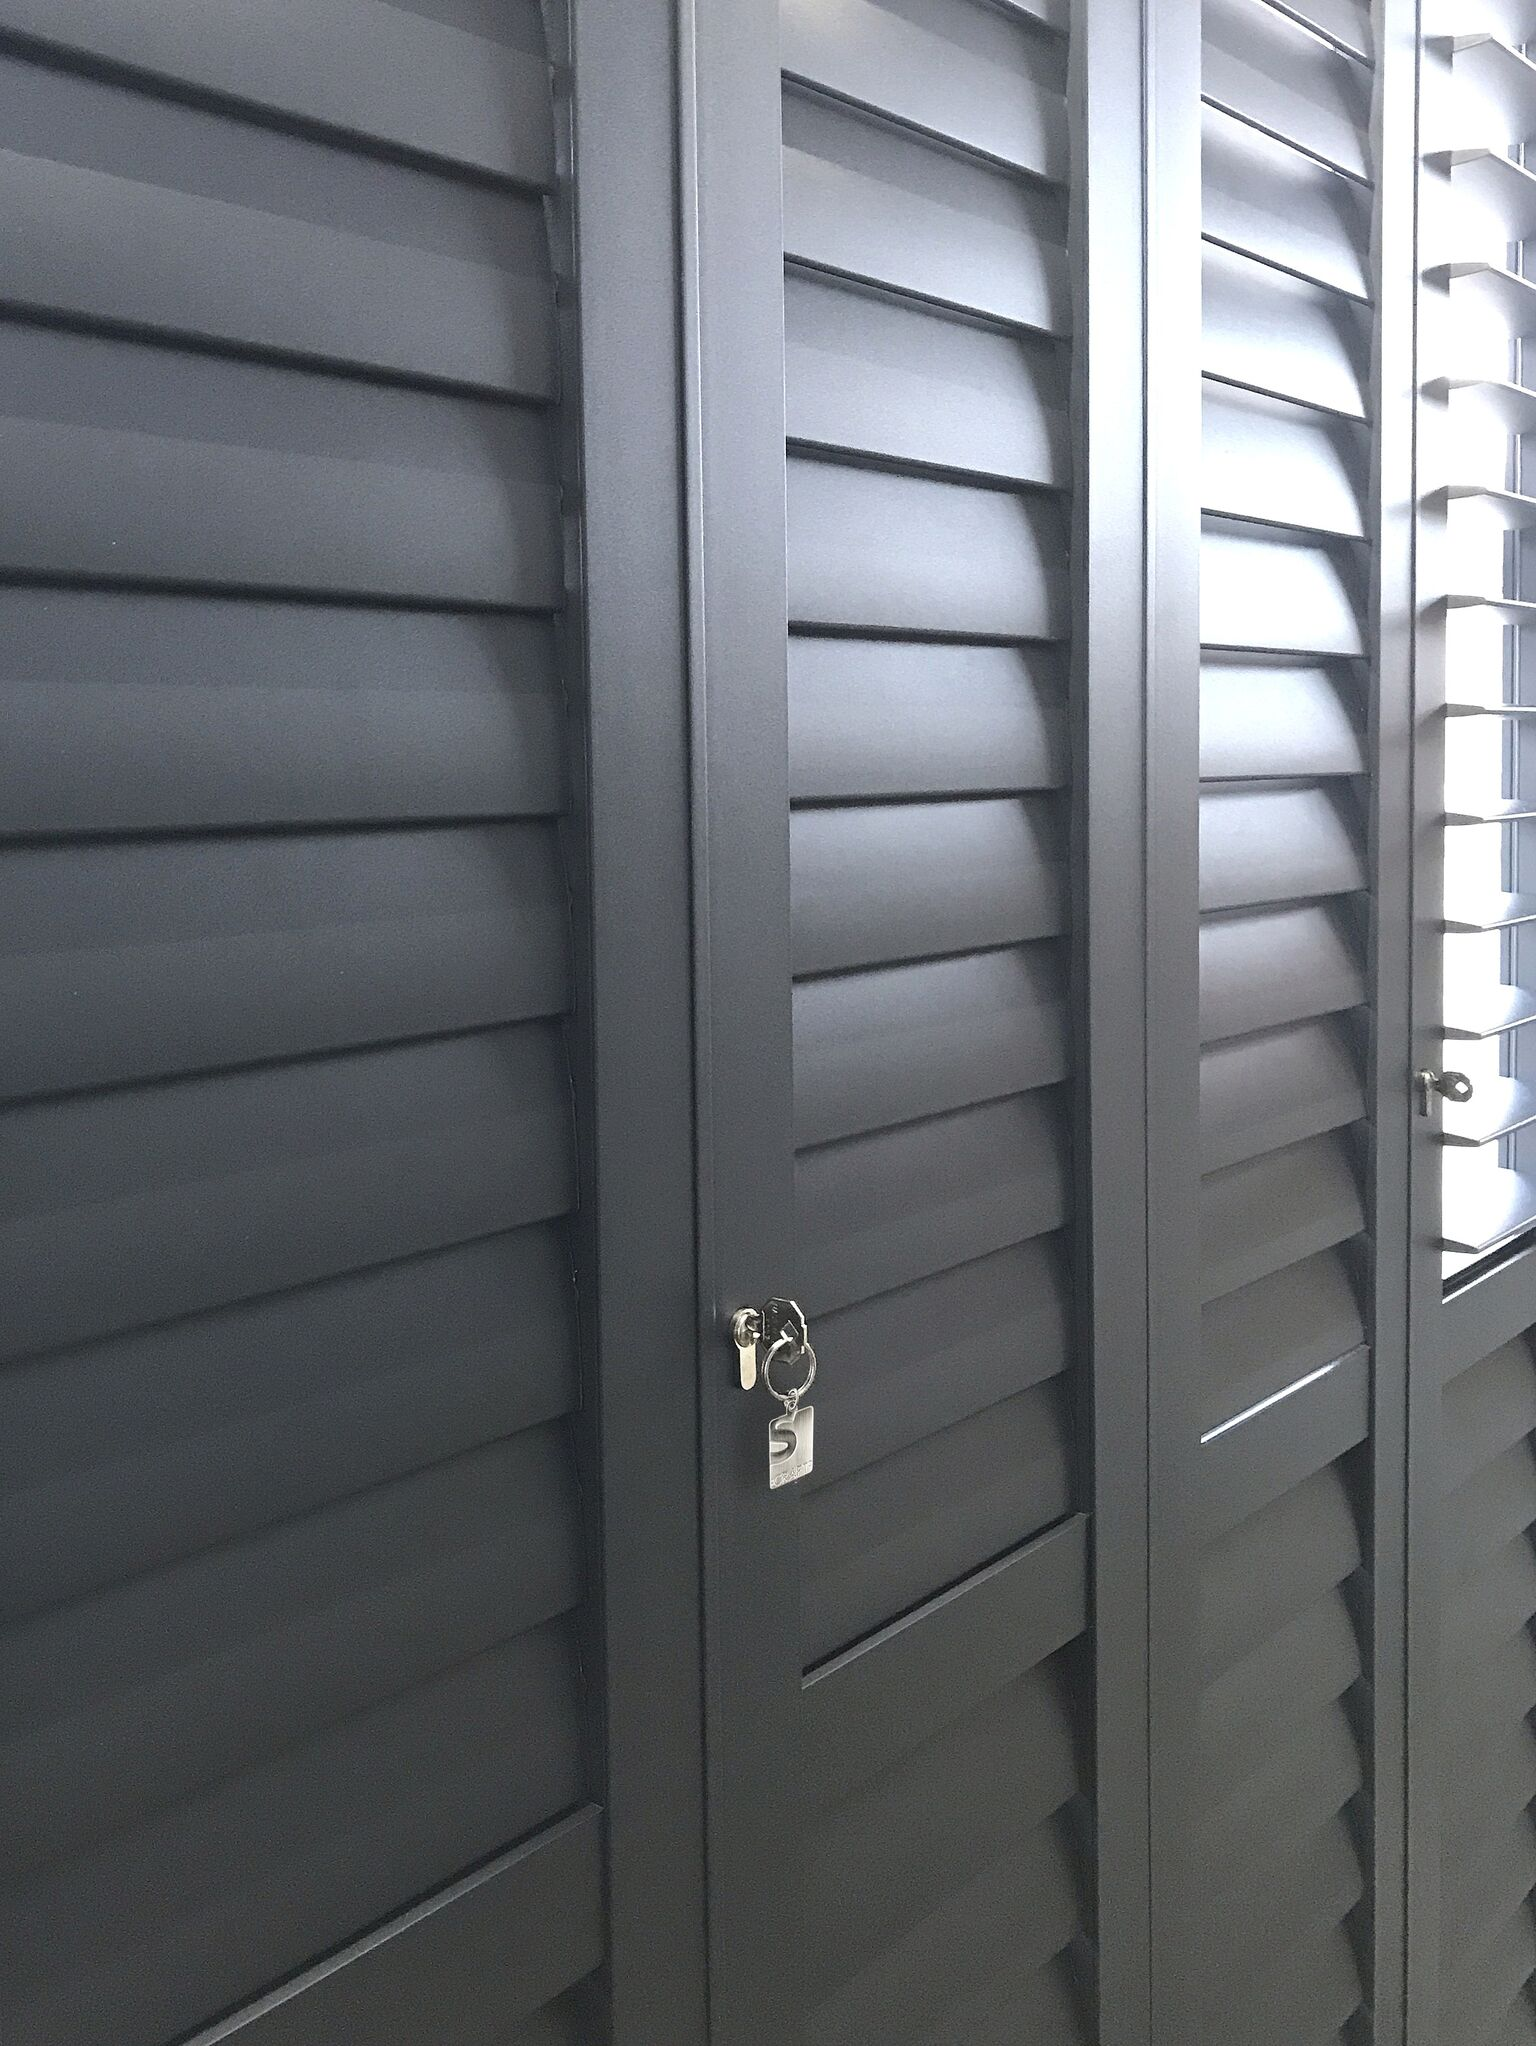 Sercurity shutters